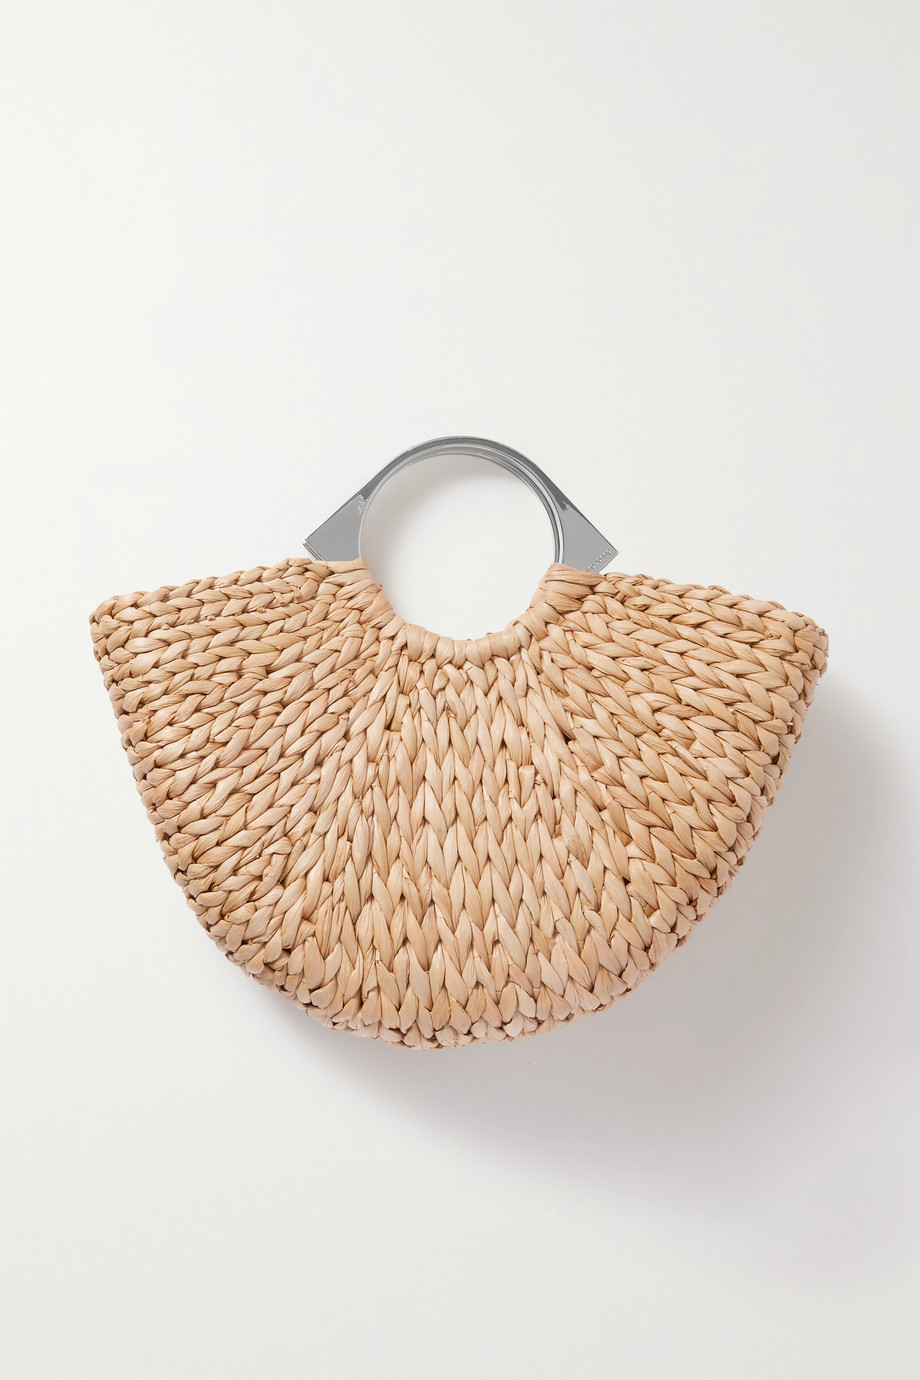 Paco Rabanne Op'art woven straw tote